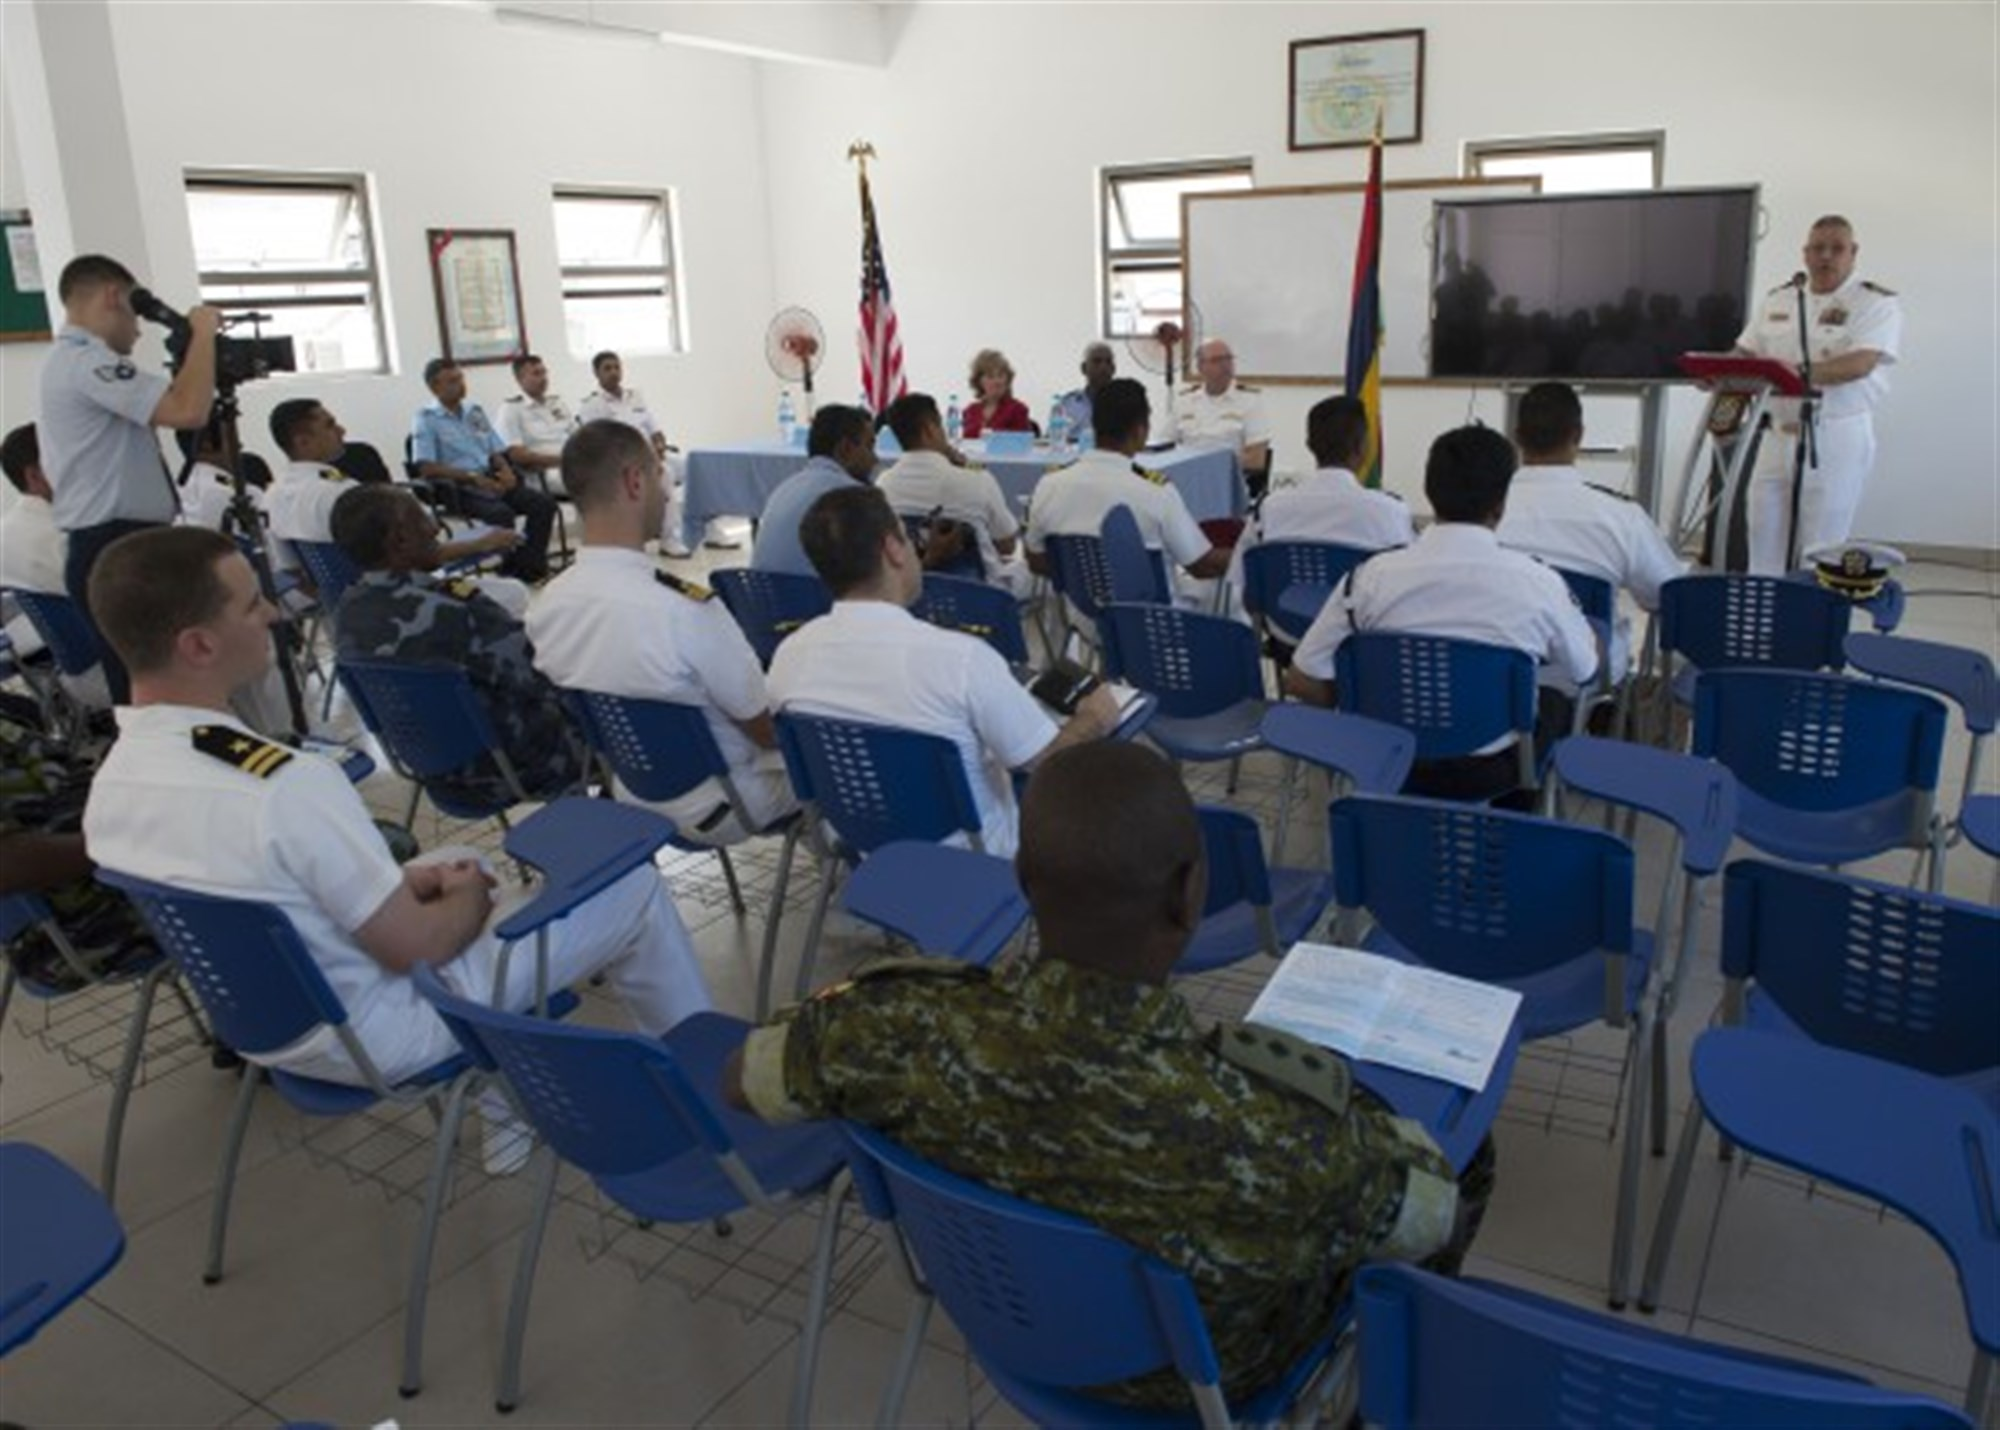 LE CHALAND, Mauritius (Jan. 28, 2015) Capt. Rich Dromerhauser, deputy commodore CTF-65, addresses attendees during the opening ceremony of Exercise Cutlass Express 2015, Jan. 28. Exercise Cutlass Express 2015, sponsored by U.S. Africa Command, is designed to improve regional cooperation, maritime domain awareness, and information sharing practices to increase capabilities of East African and Indian Ocean nations to counter sea-based illicit activity. (U.S. Navy photo by Mass Communication Specialist 1st Class David R. Krigbaum/Released)